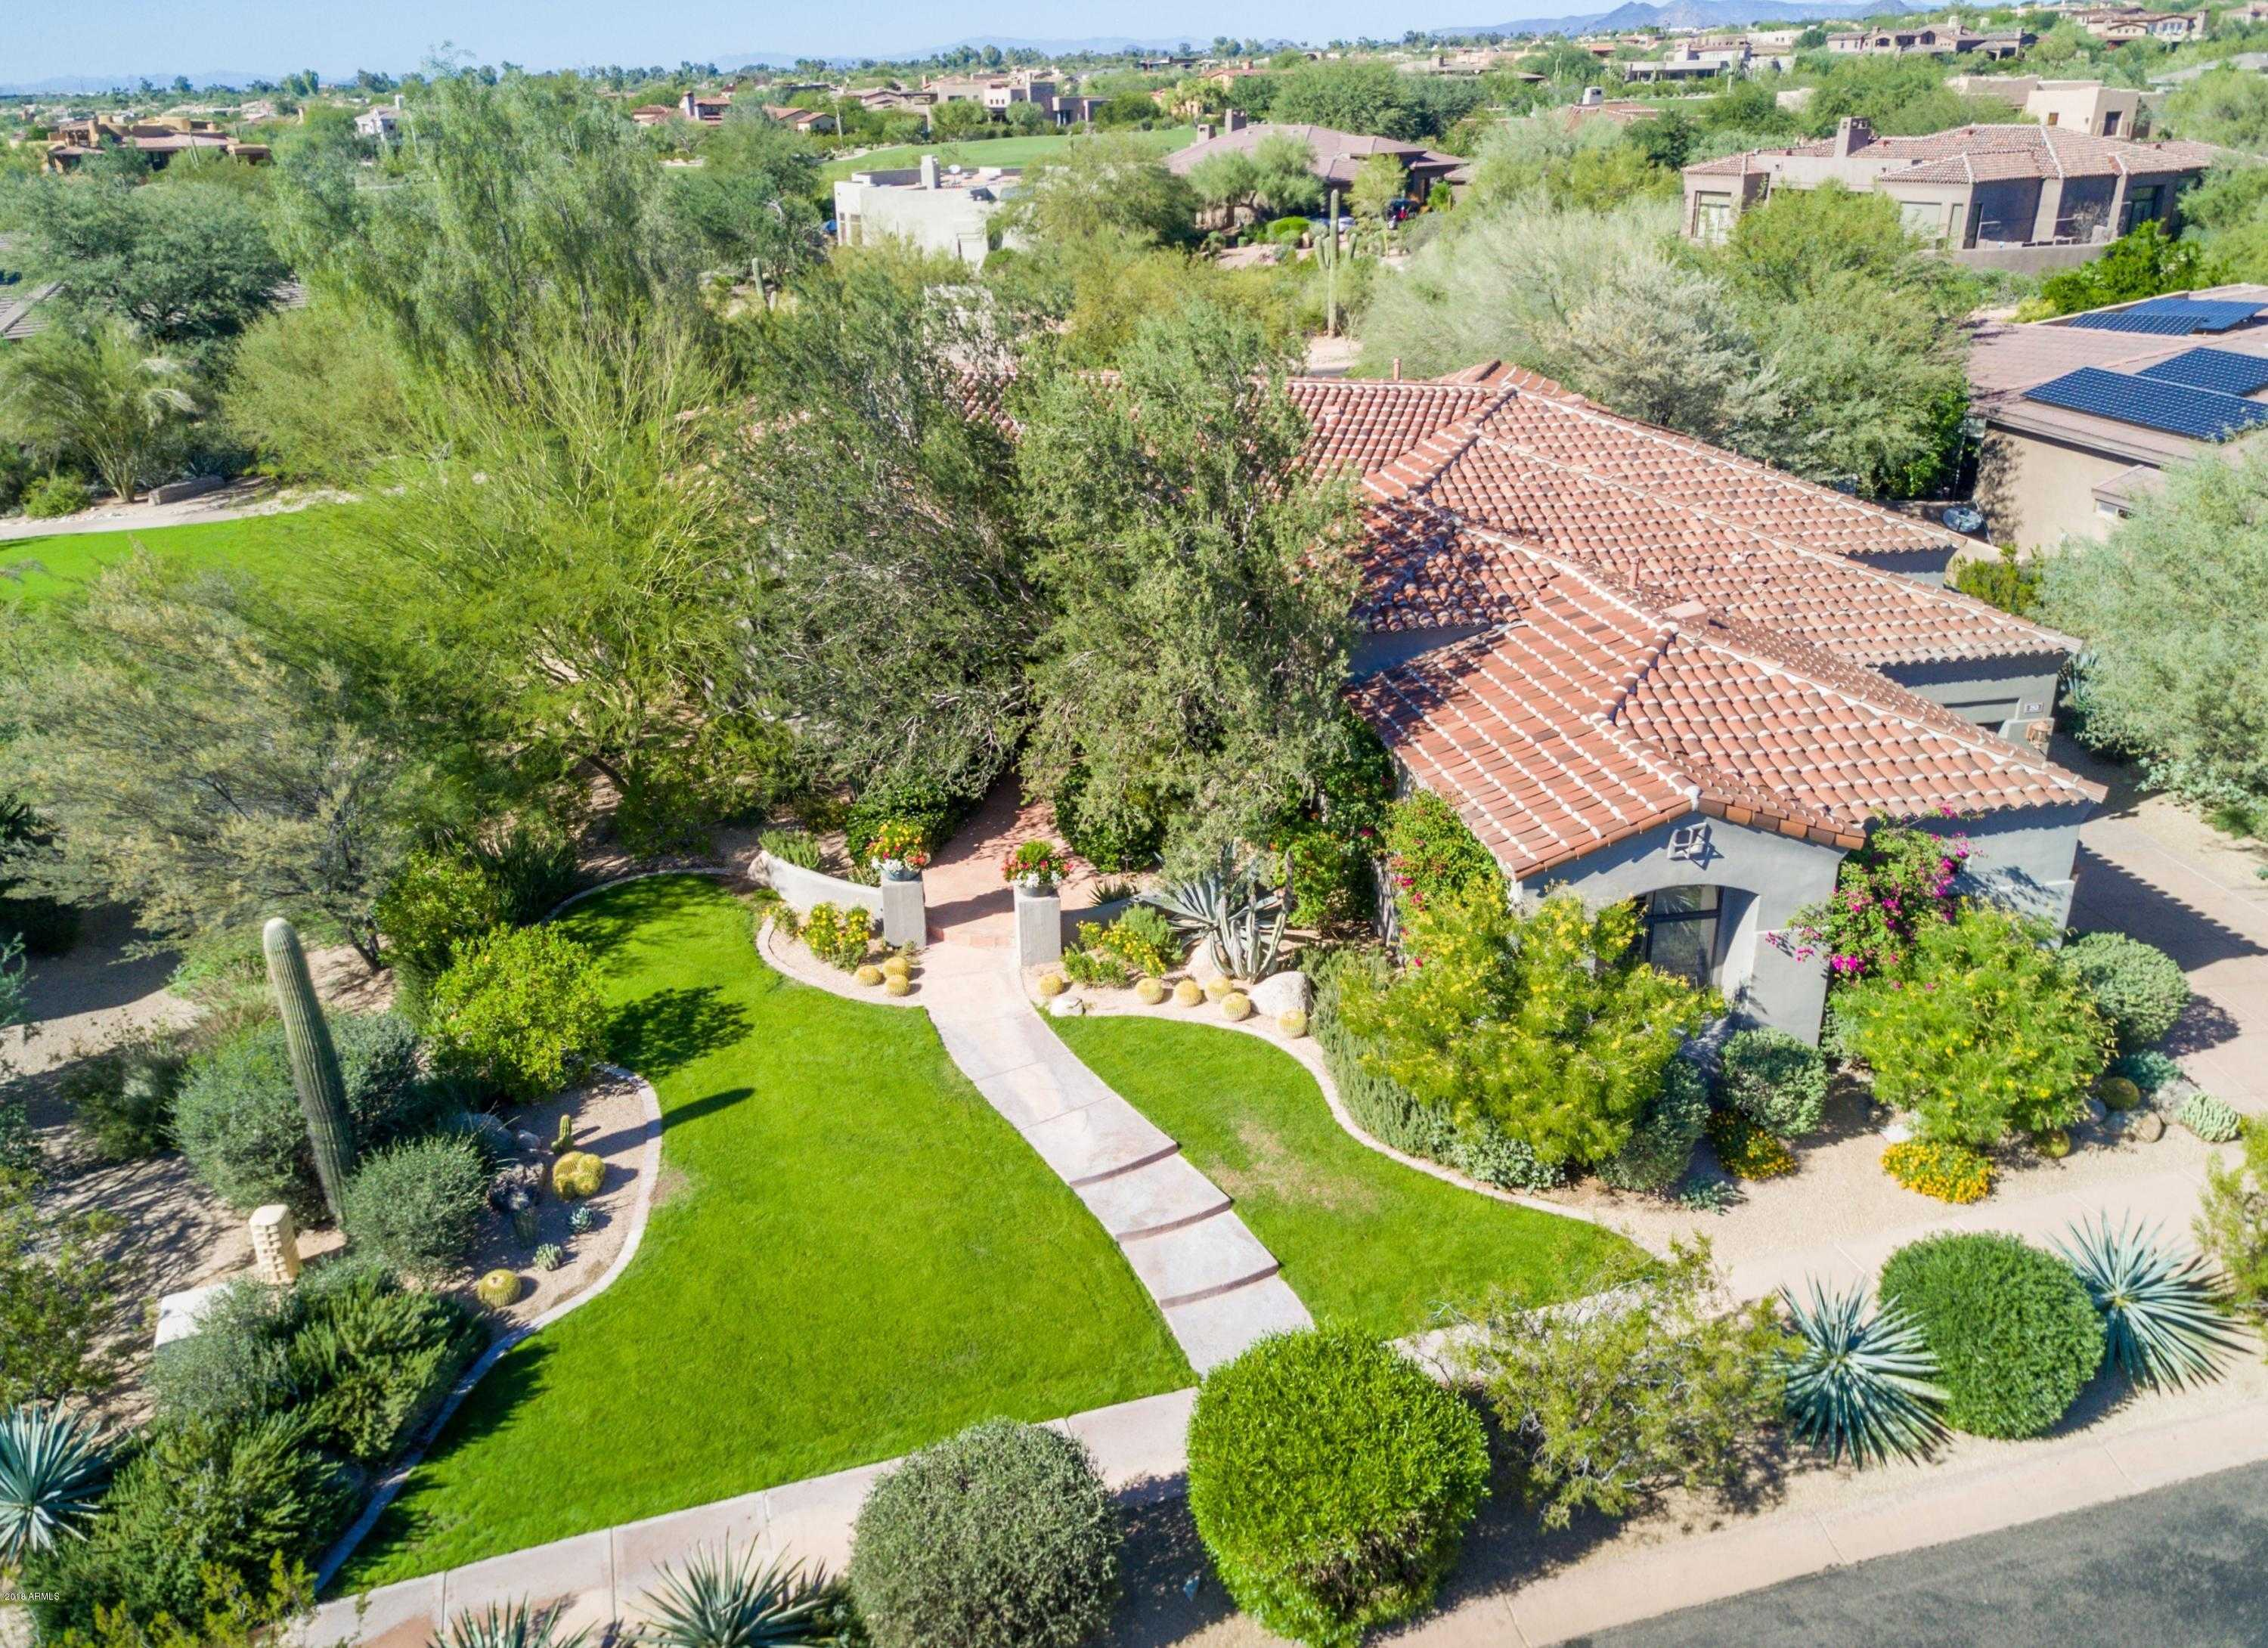 $1,100,000 - 5Br/4Ba - Home for Sale in Dc Ranch, Scottsdale